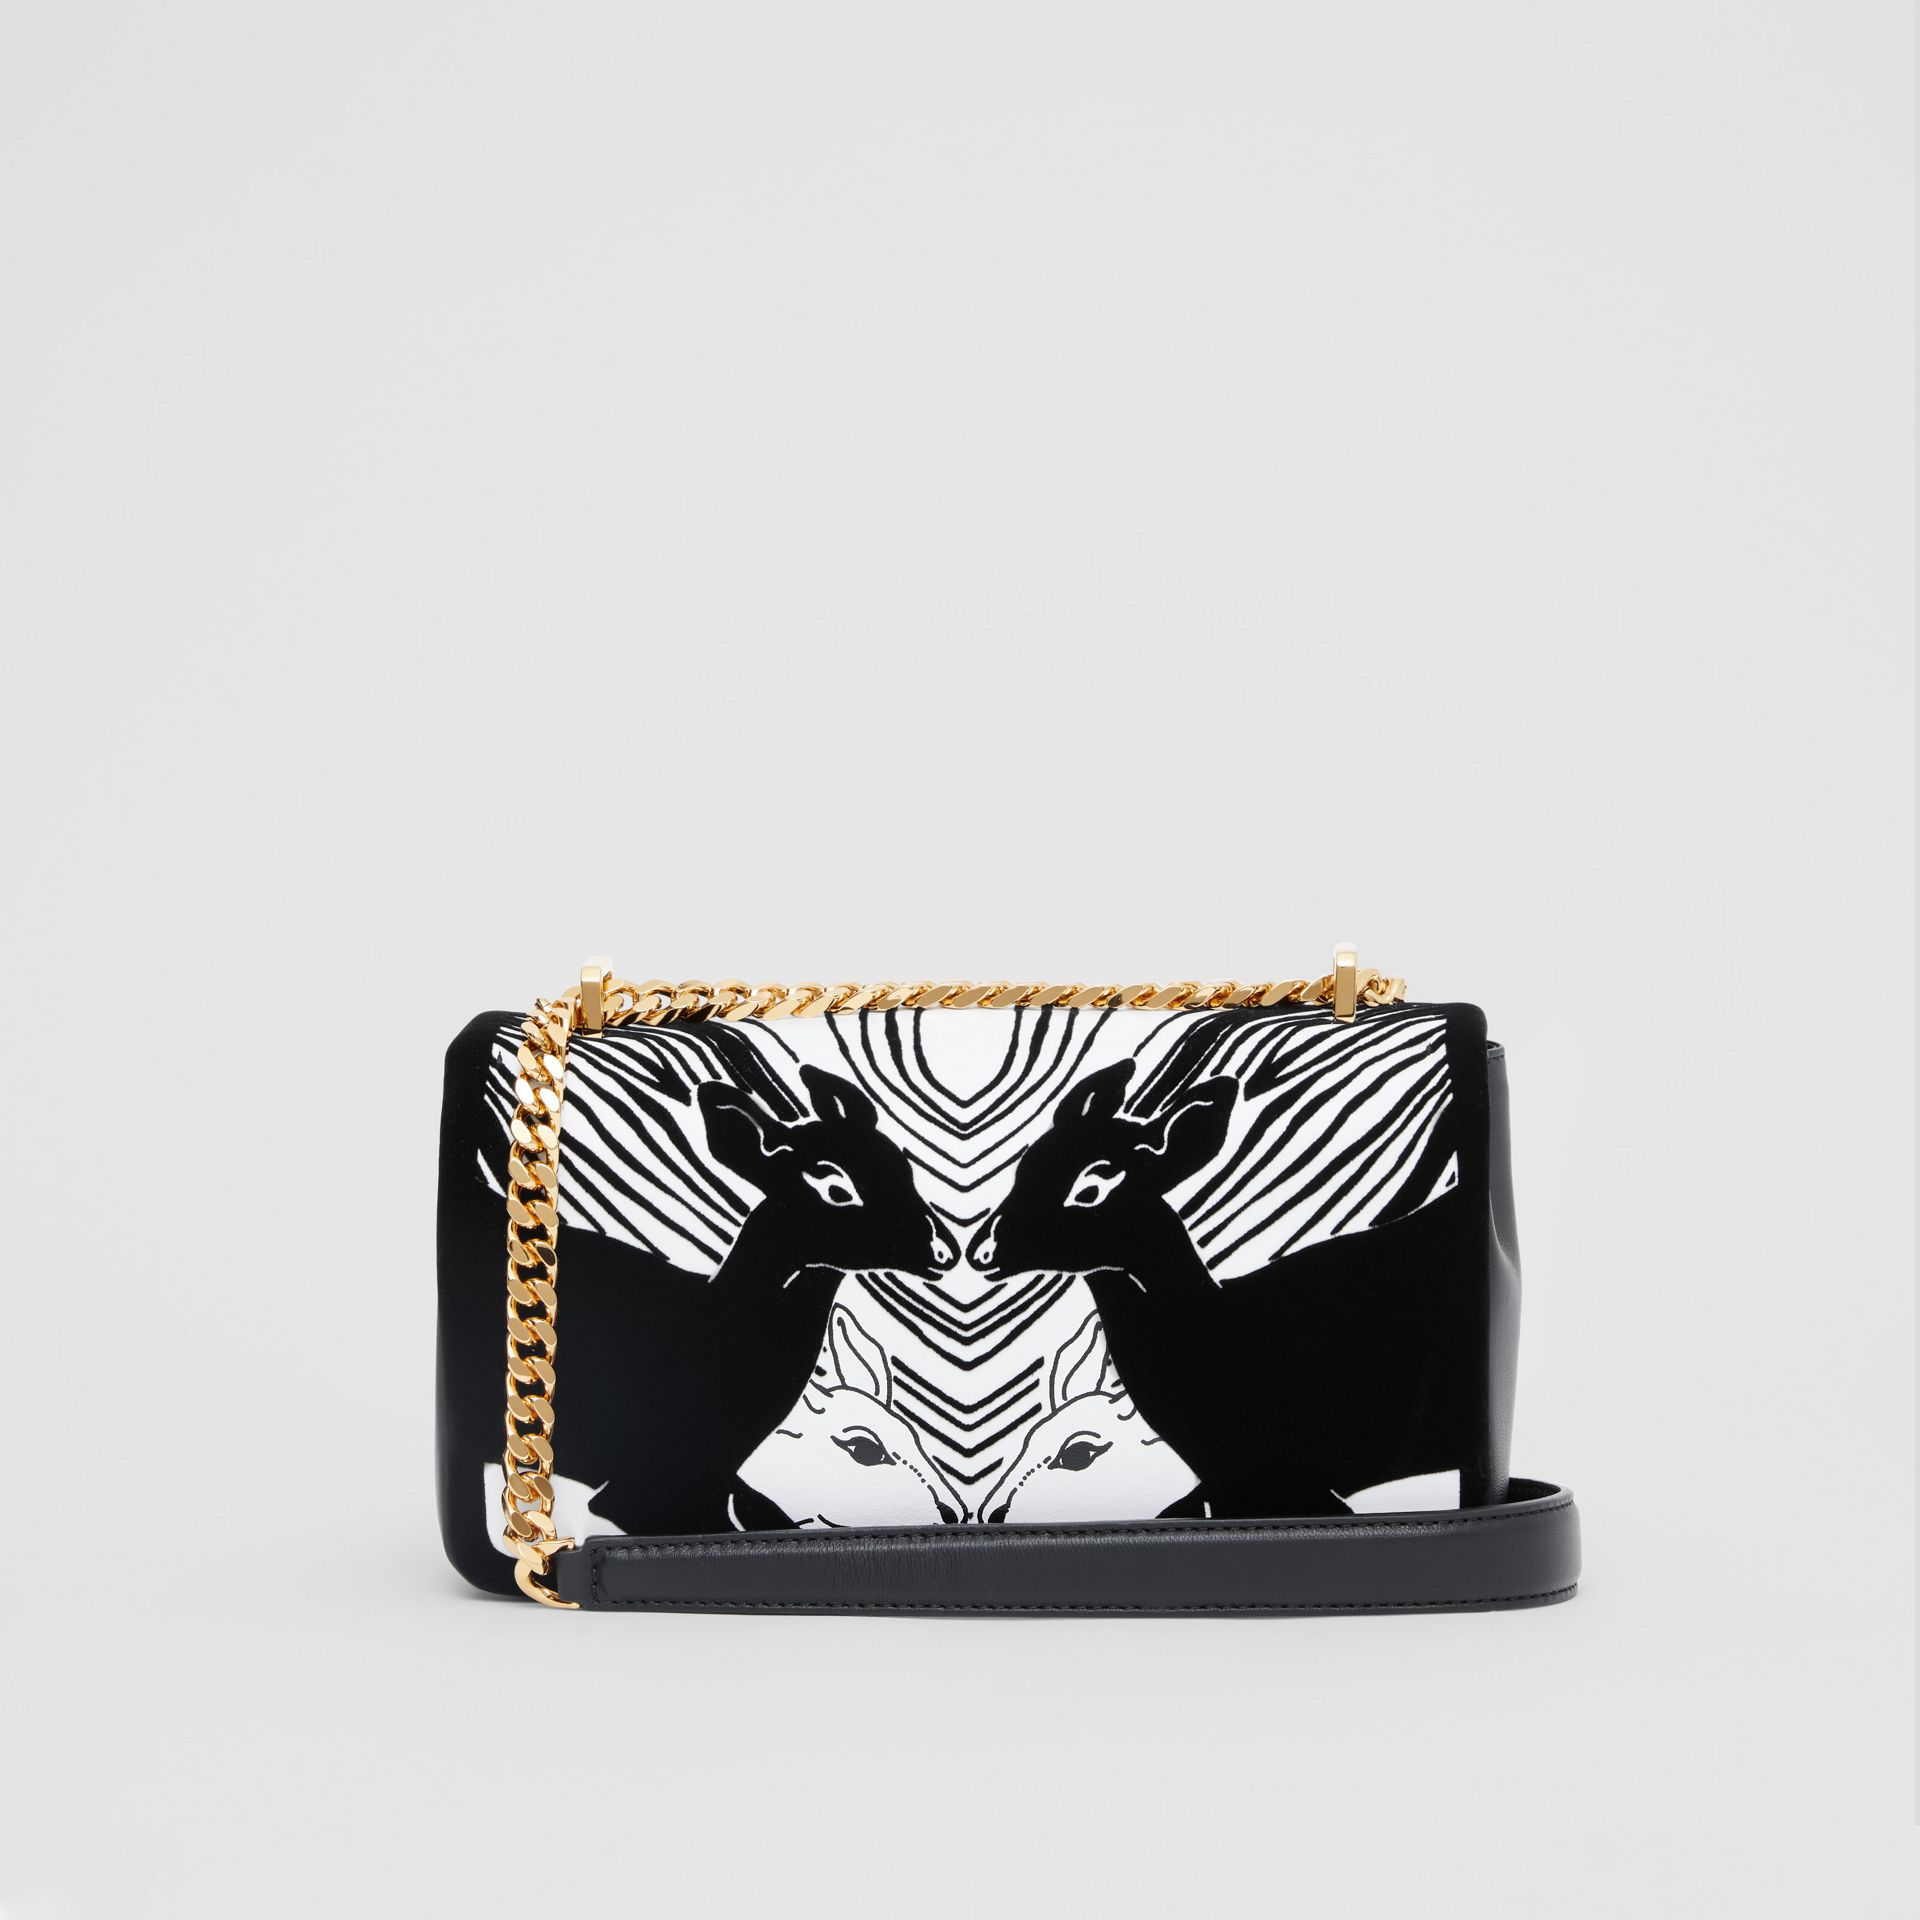 Small Deer Flock Leather Lola Bag in Black/white - Women | Burberry - gallery image 7